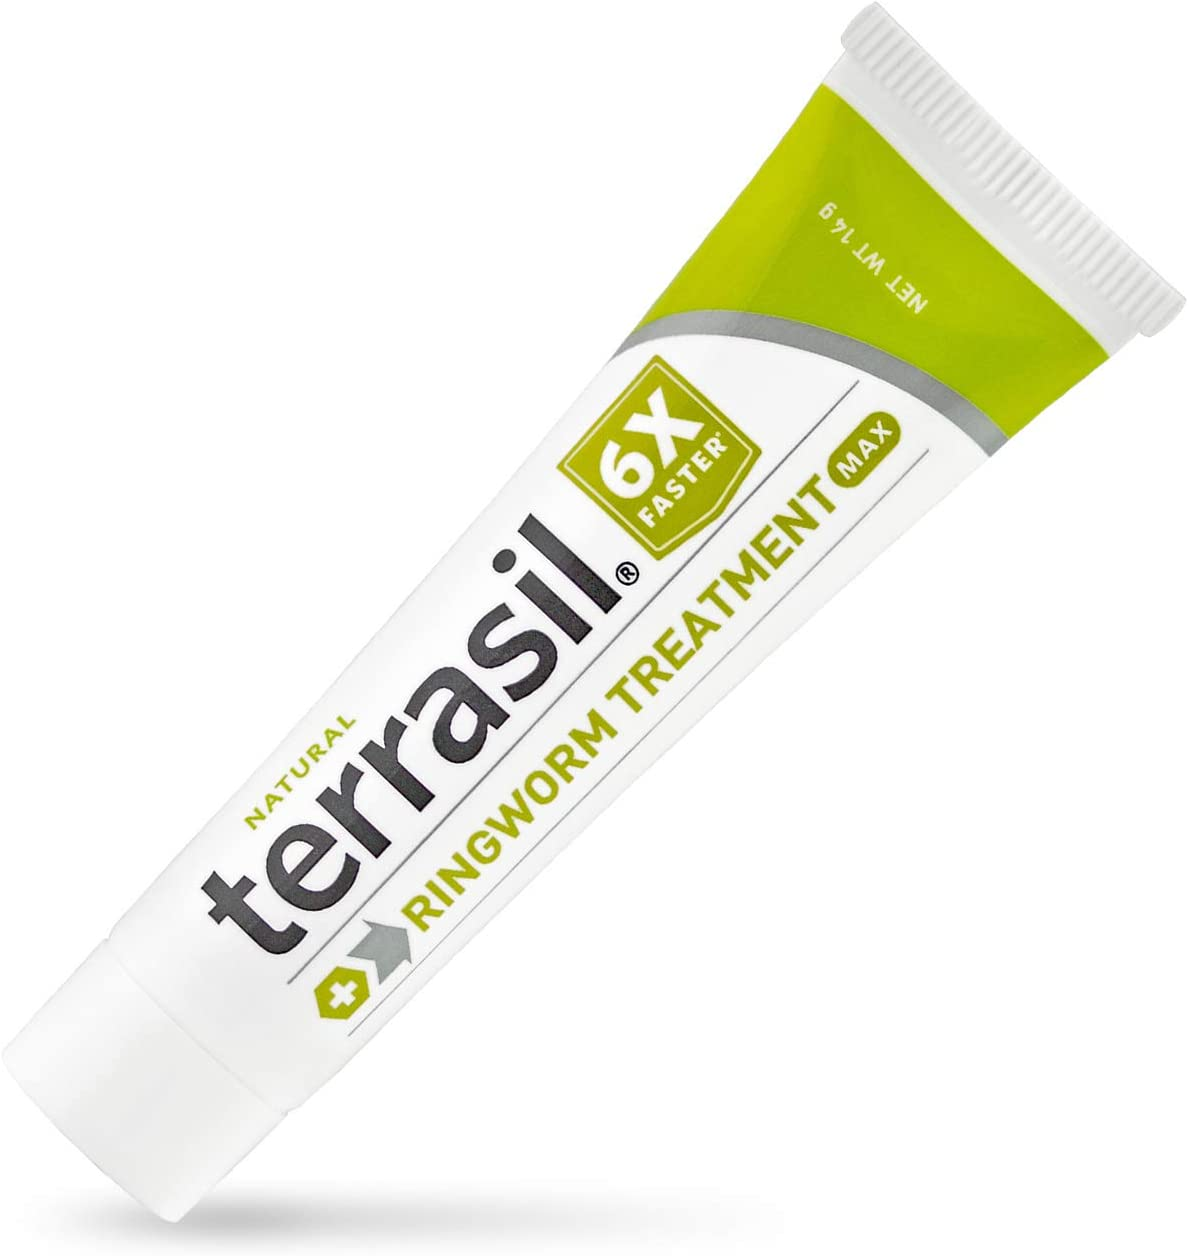 terrasil Ringworm Treatment MAX - 6X Faster Patented Natural Anti-Fungal Ointment for itching Burning Pain Inflammation & Irritation from Ringworm Skin Infection - 14g Tube